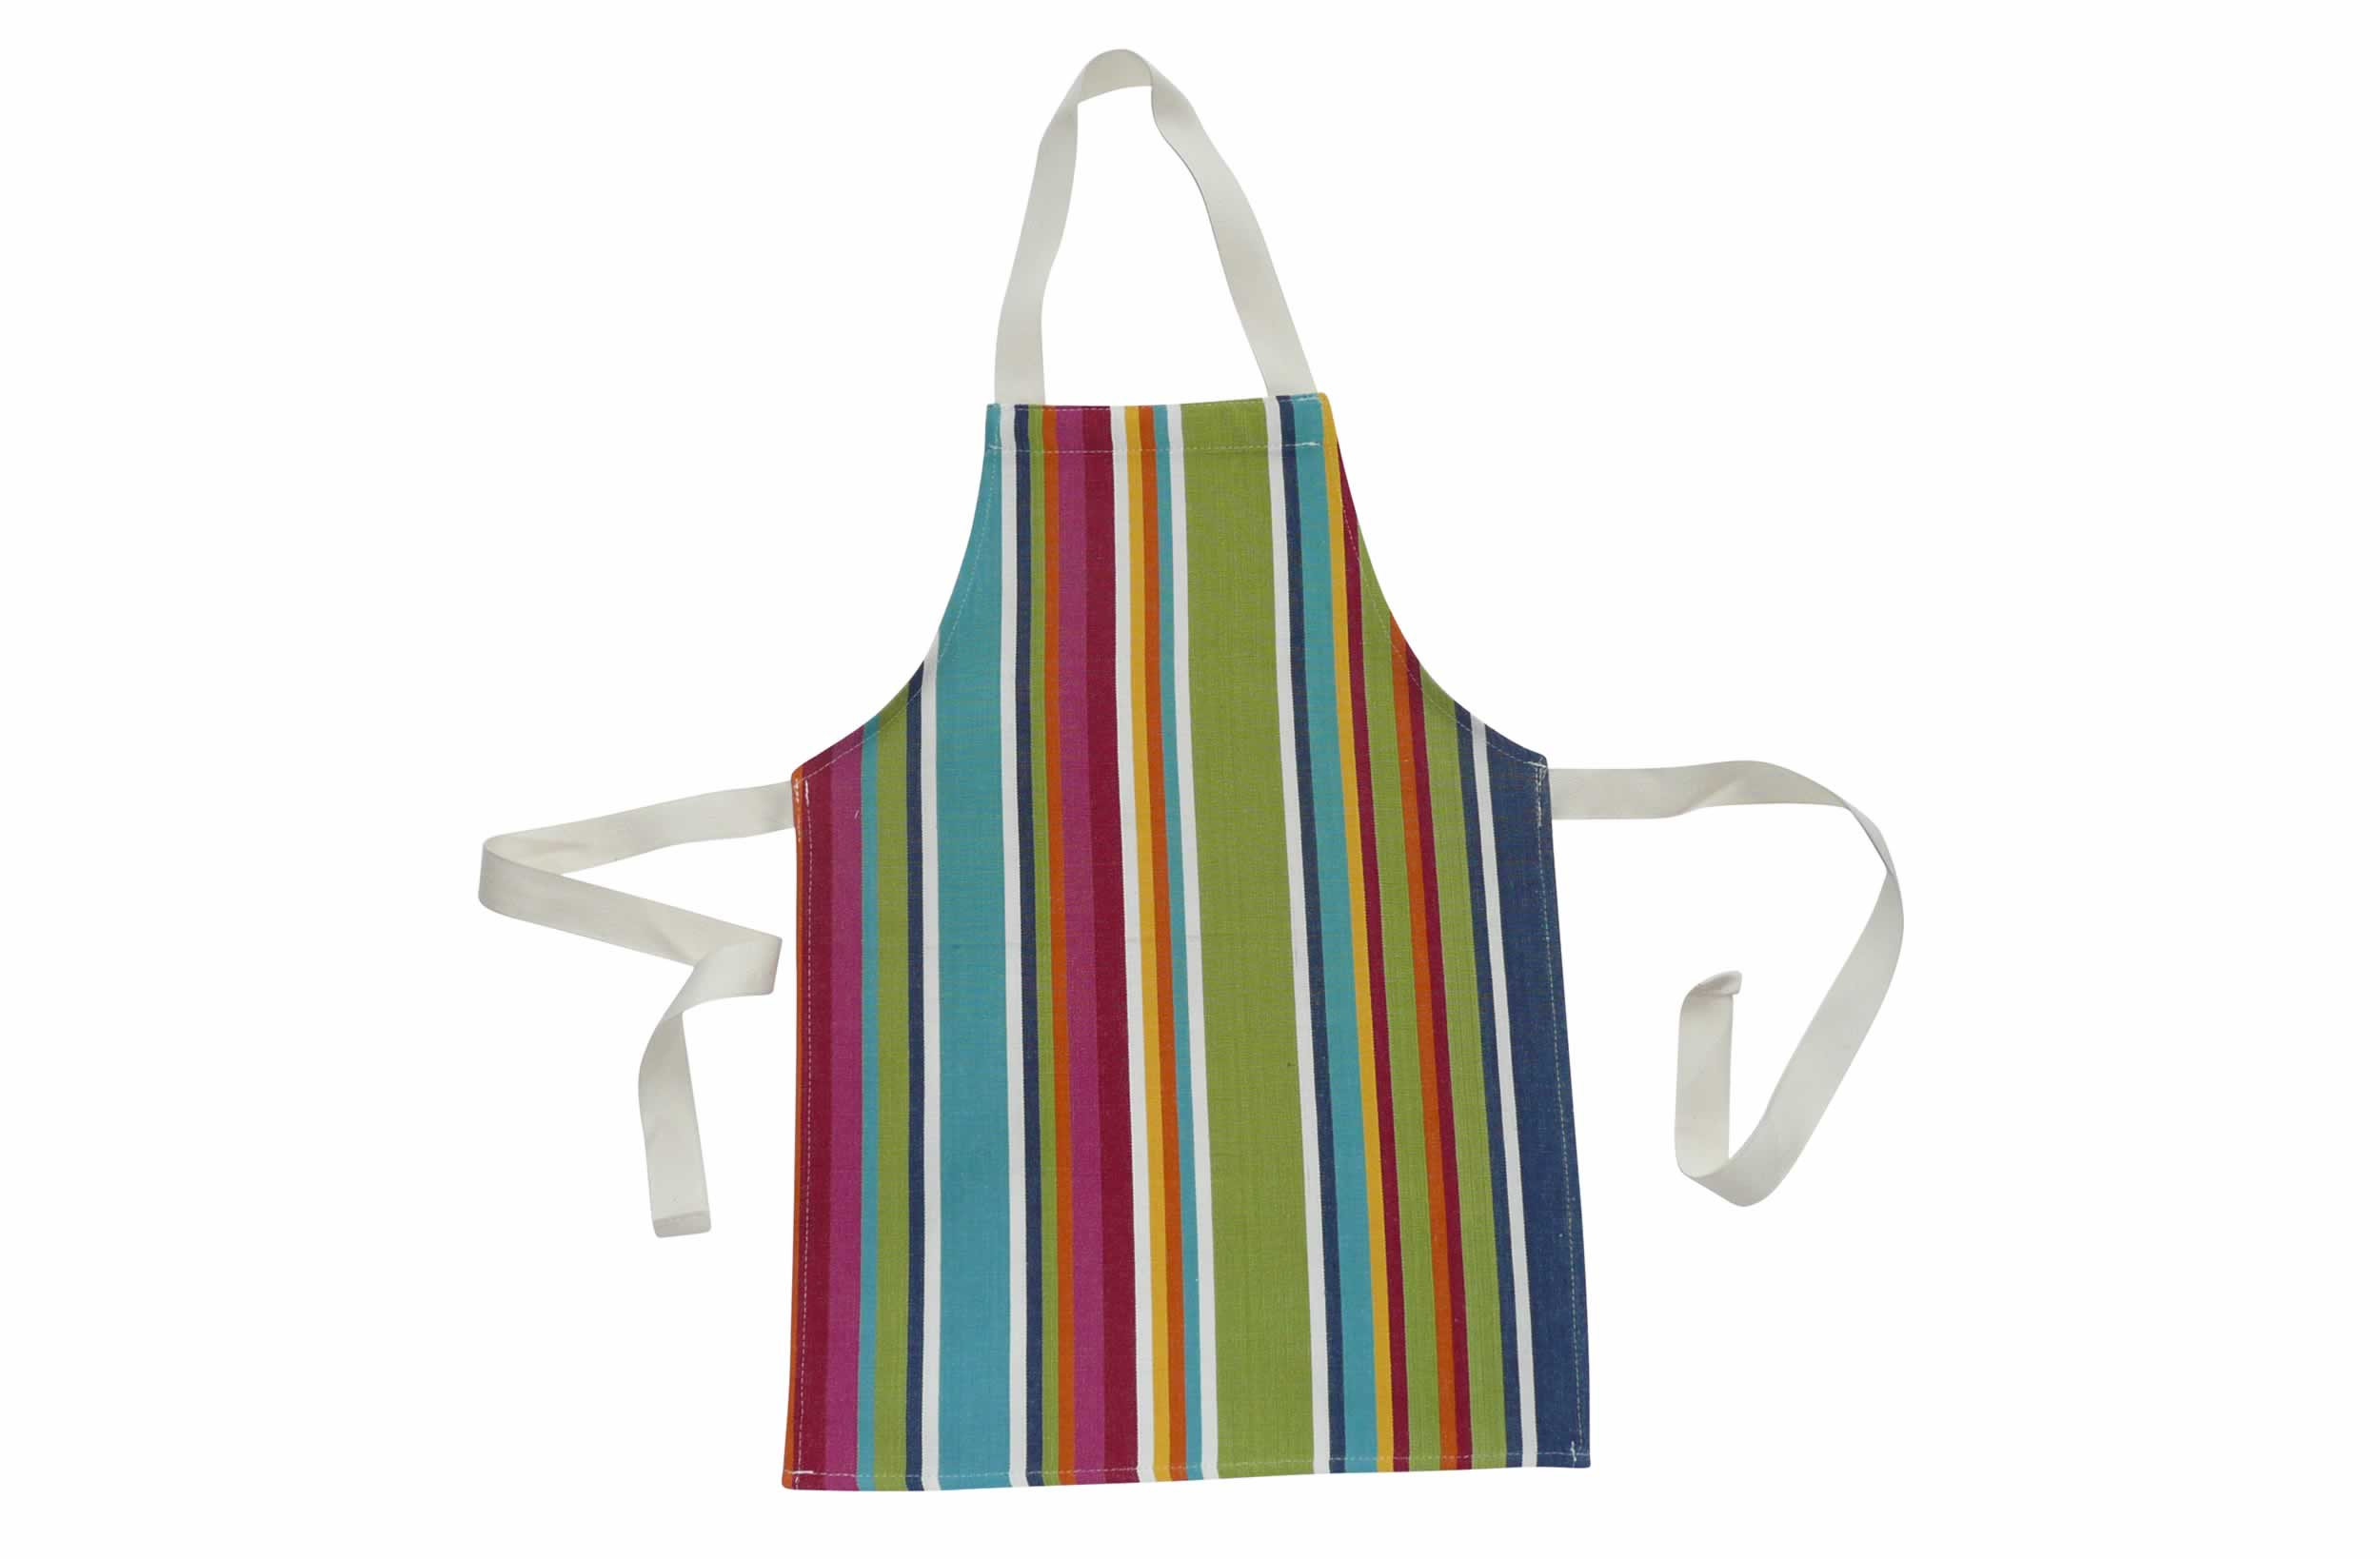 Colourful Toddler Aprons - Striped Aprons For Small Children